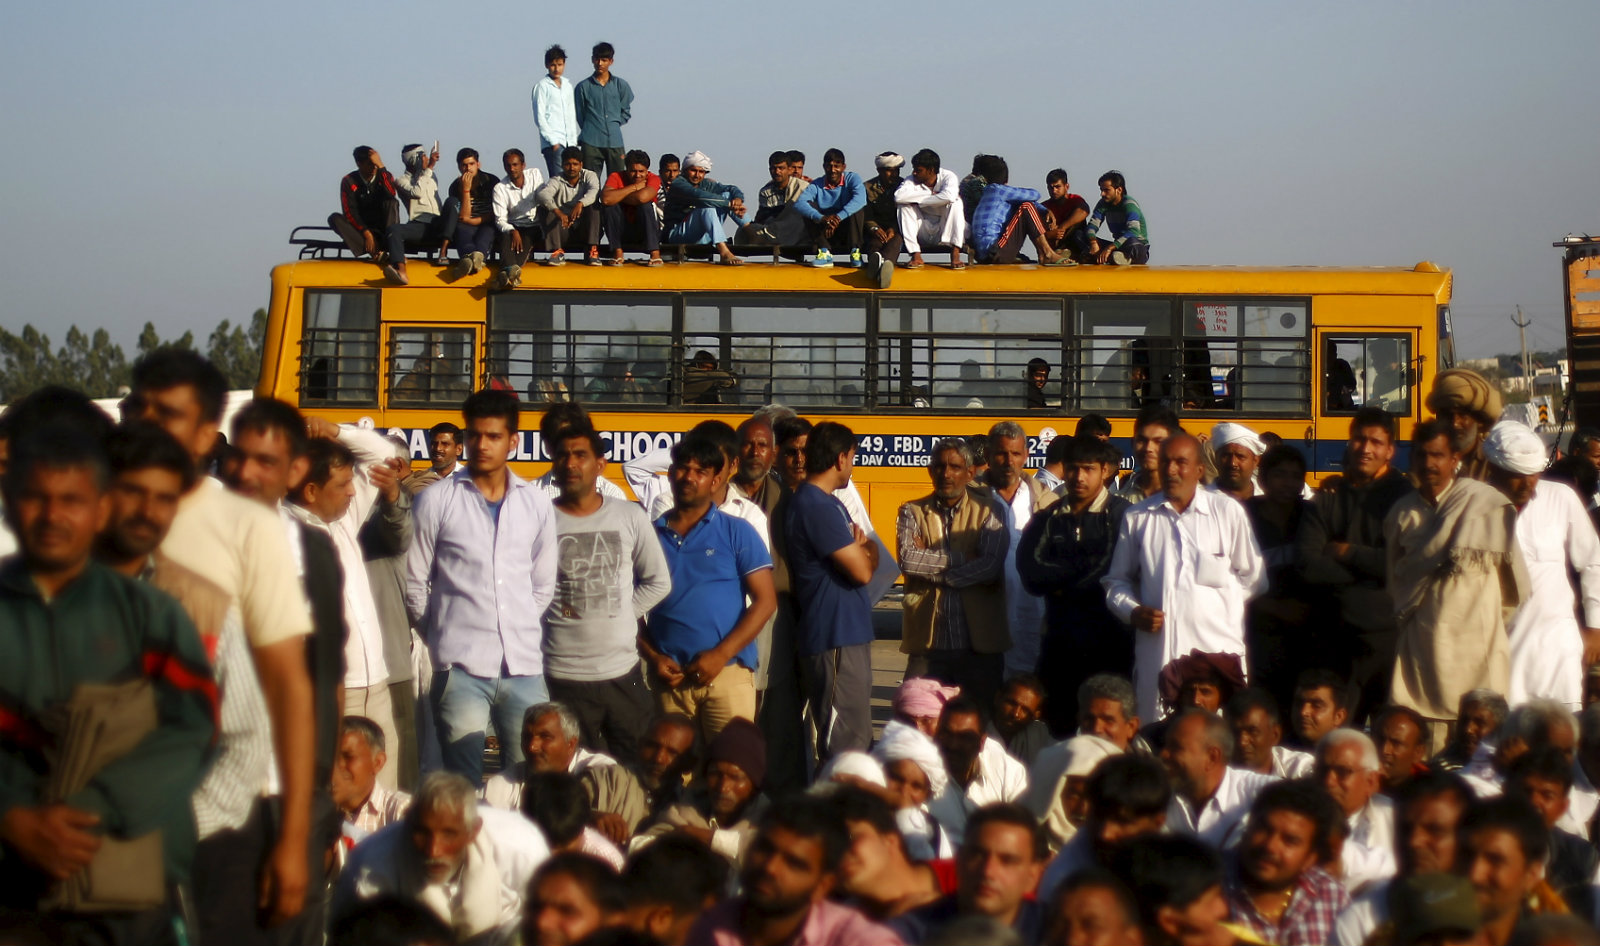 Demonstrators from the Jat community sit on top of a school bus as they block the Delhi-Haryana national highway during a protest at Sampla village in Haryana, India, February 21, 2016. India deployed thousands of troops in a northern state on Sunday to quell protests that have severely hit water supplies to Delhi, a metropolis of more than 20 million, forced factories to close and killed 10 people.